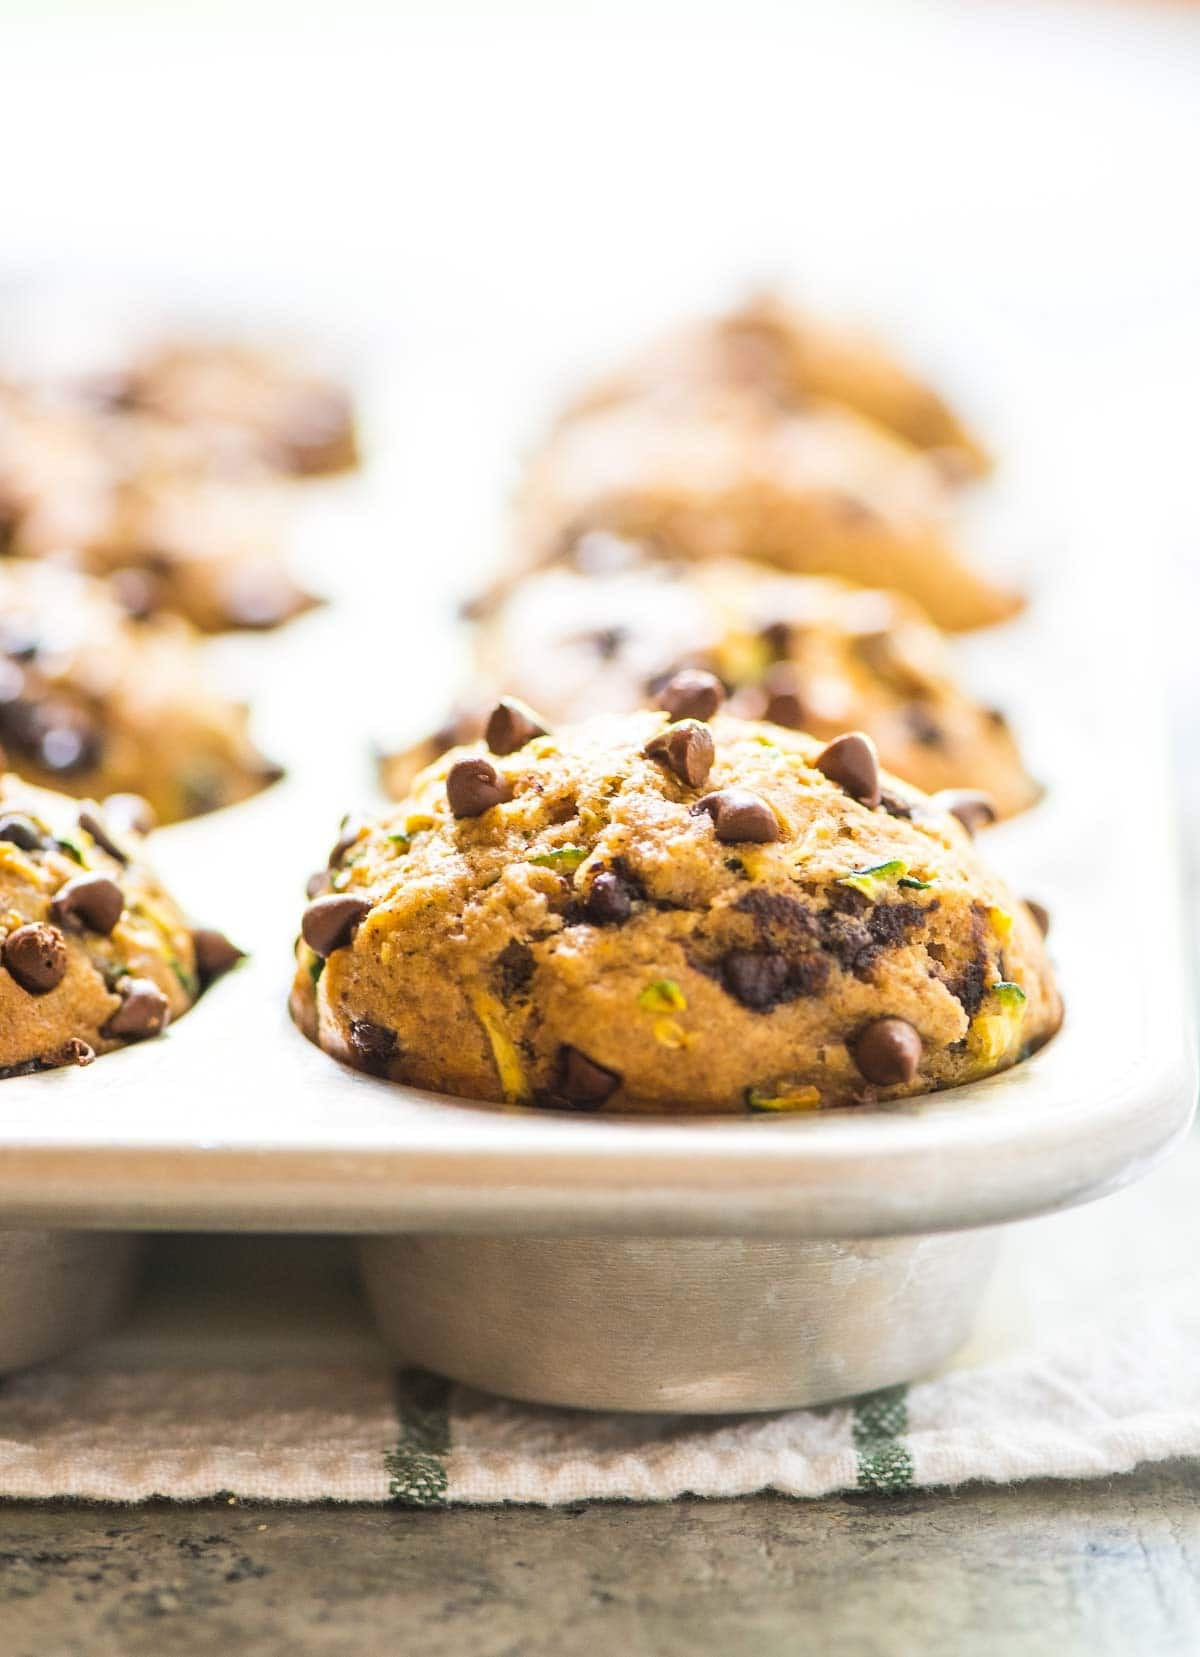 Healthy Zucchini Muffins  Healthy Zucchini Muffins with Chocolate Chips